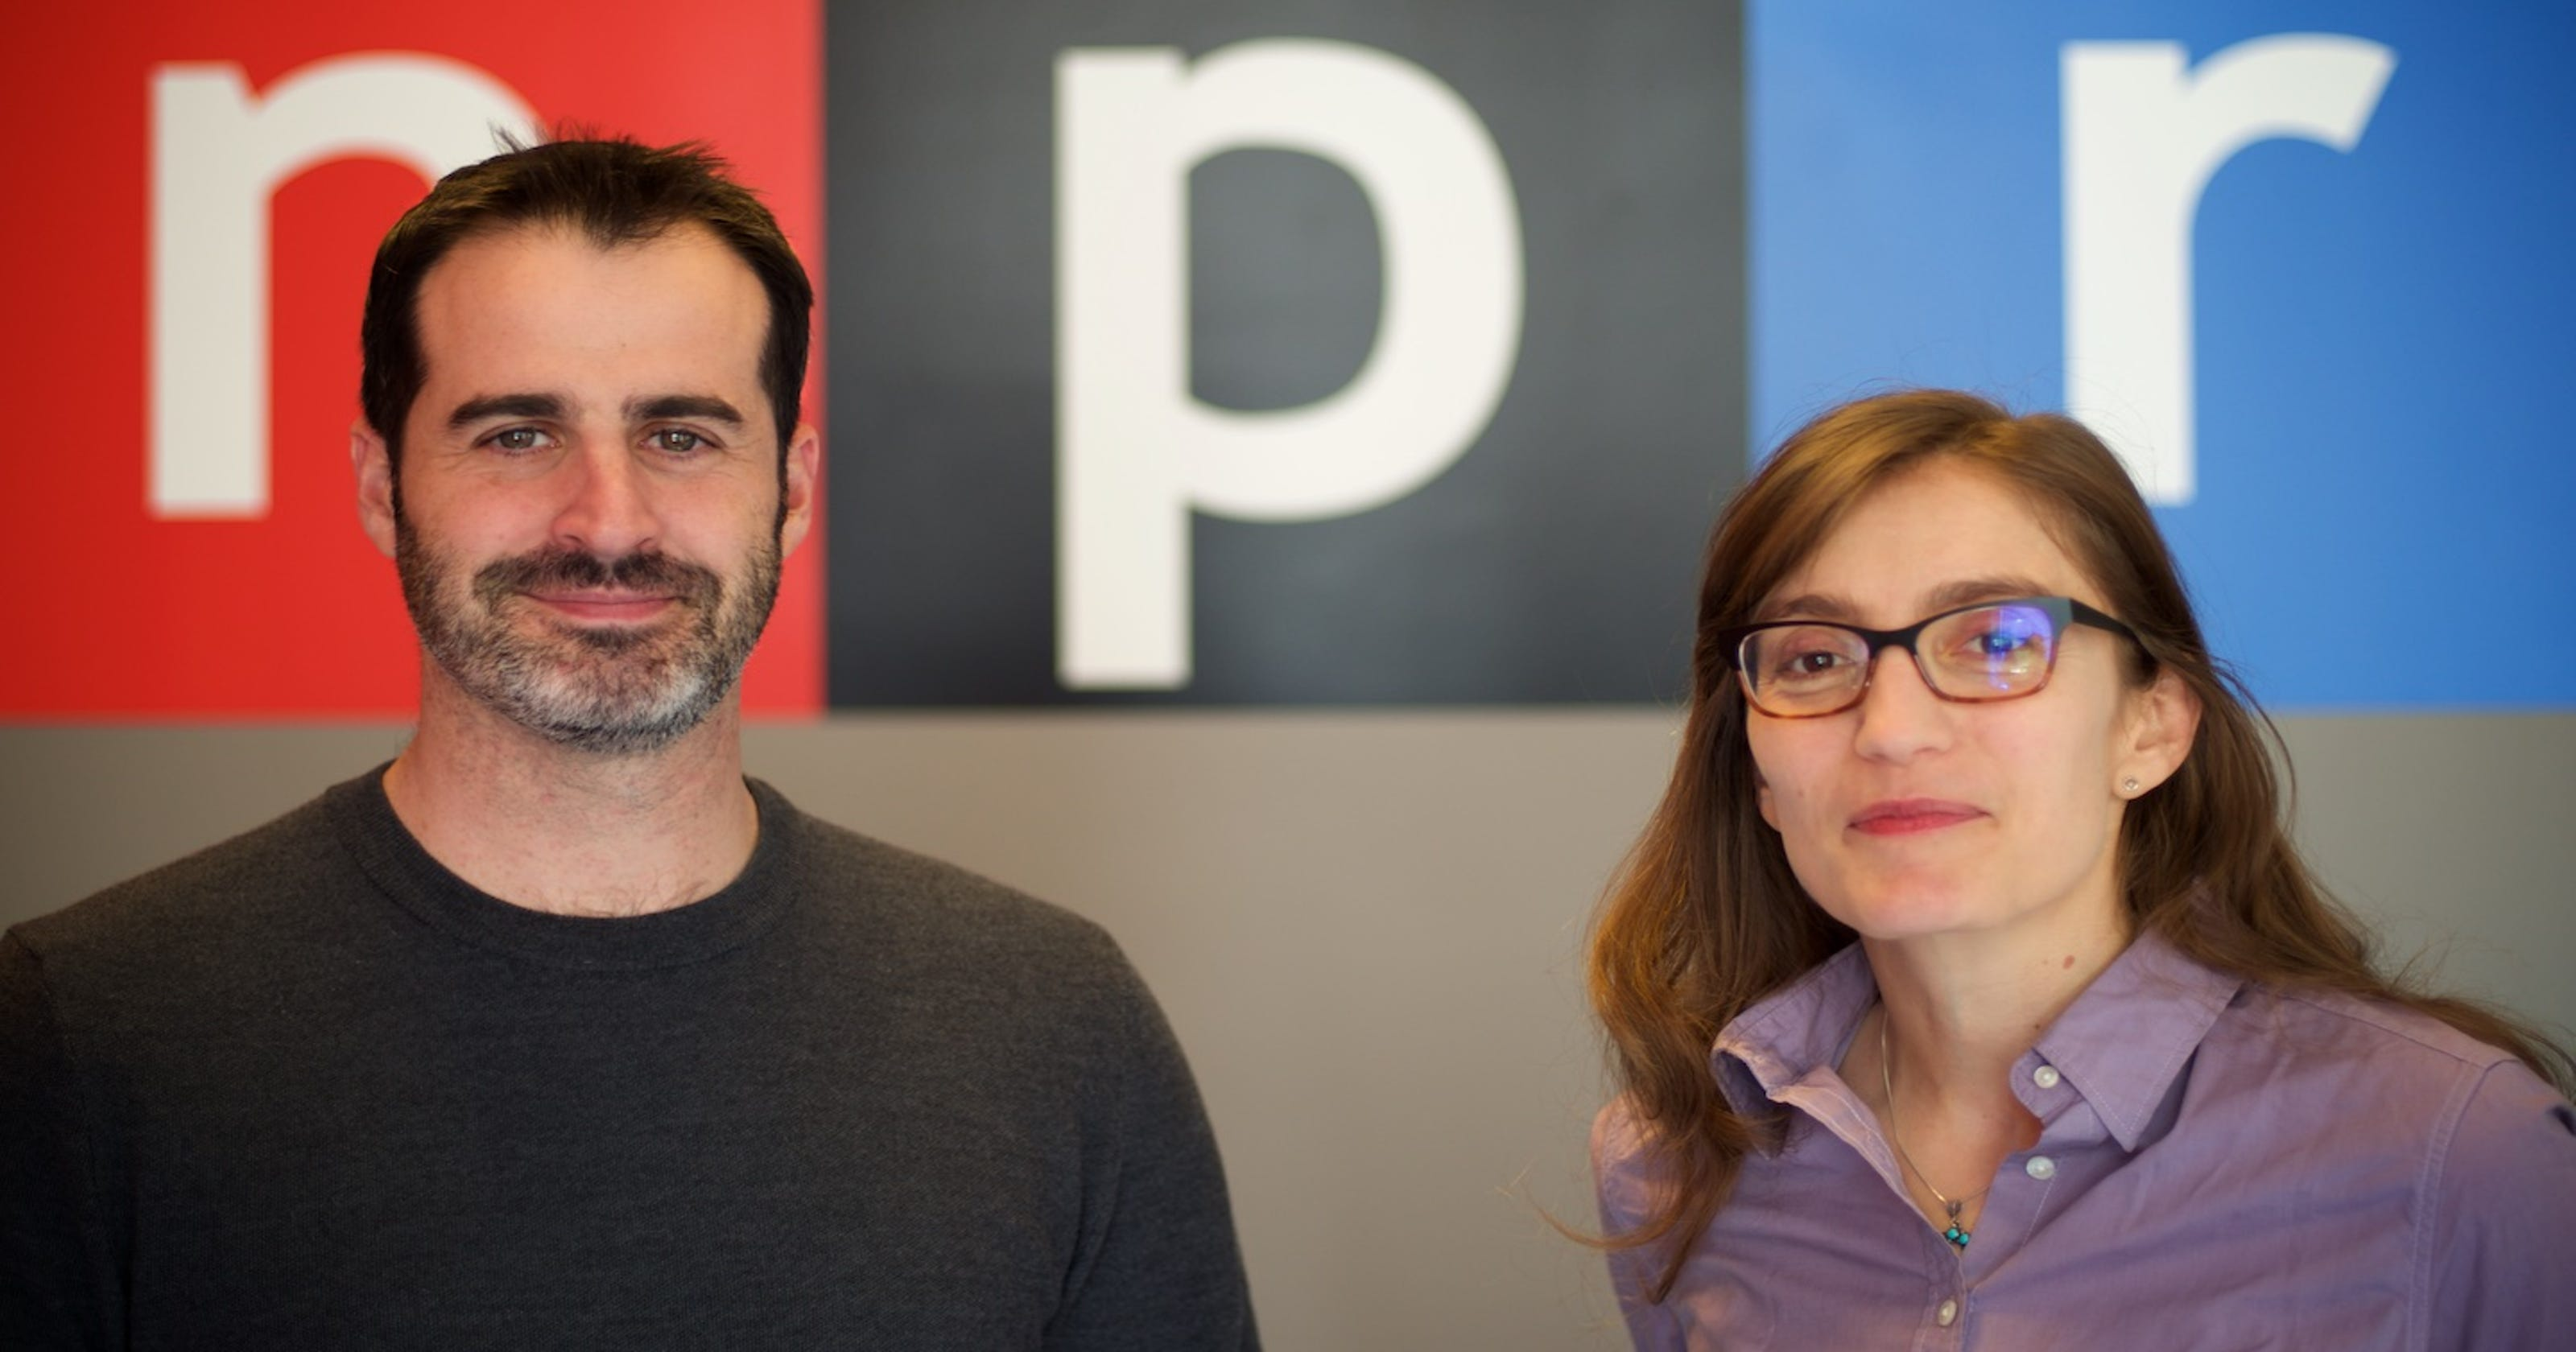 Cardiff Garcia on the left and Stacey Vanek Smith on the right in front of the NPR logo.